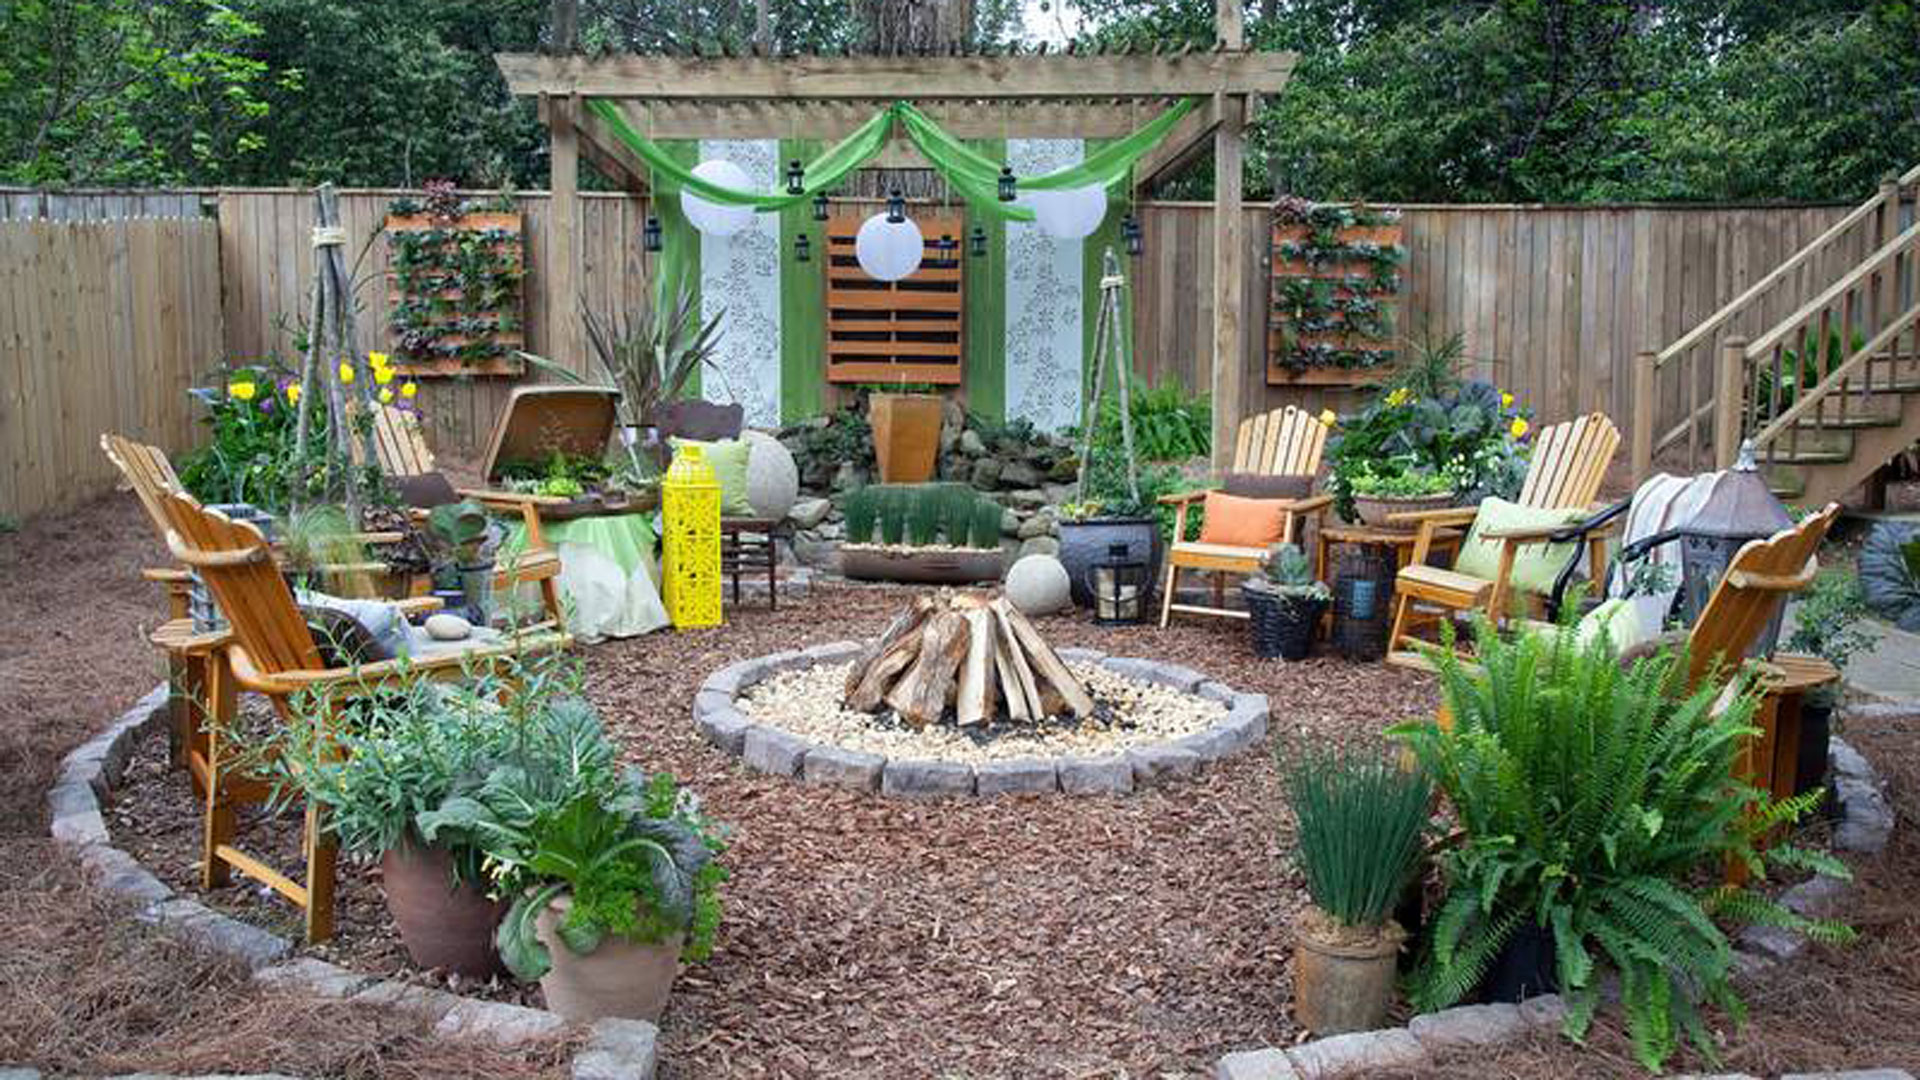 Backyard oasis beautiful backyard ideas for Creating a landscape